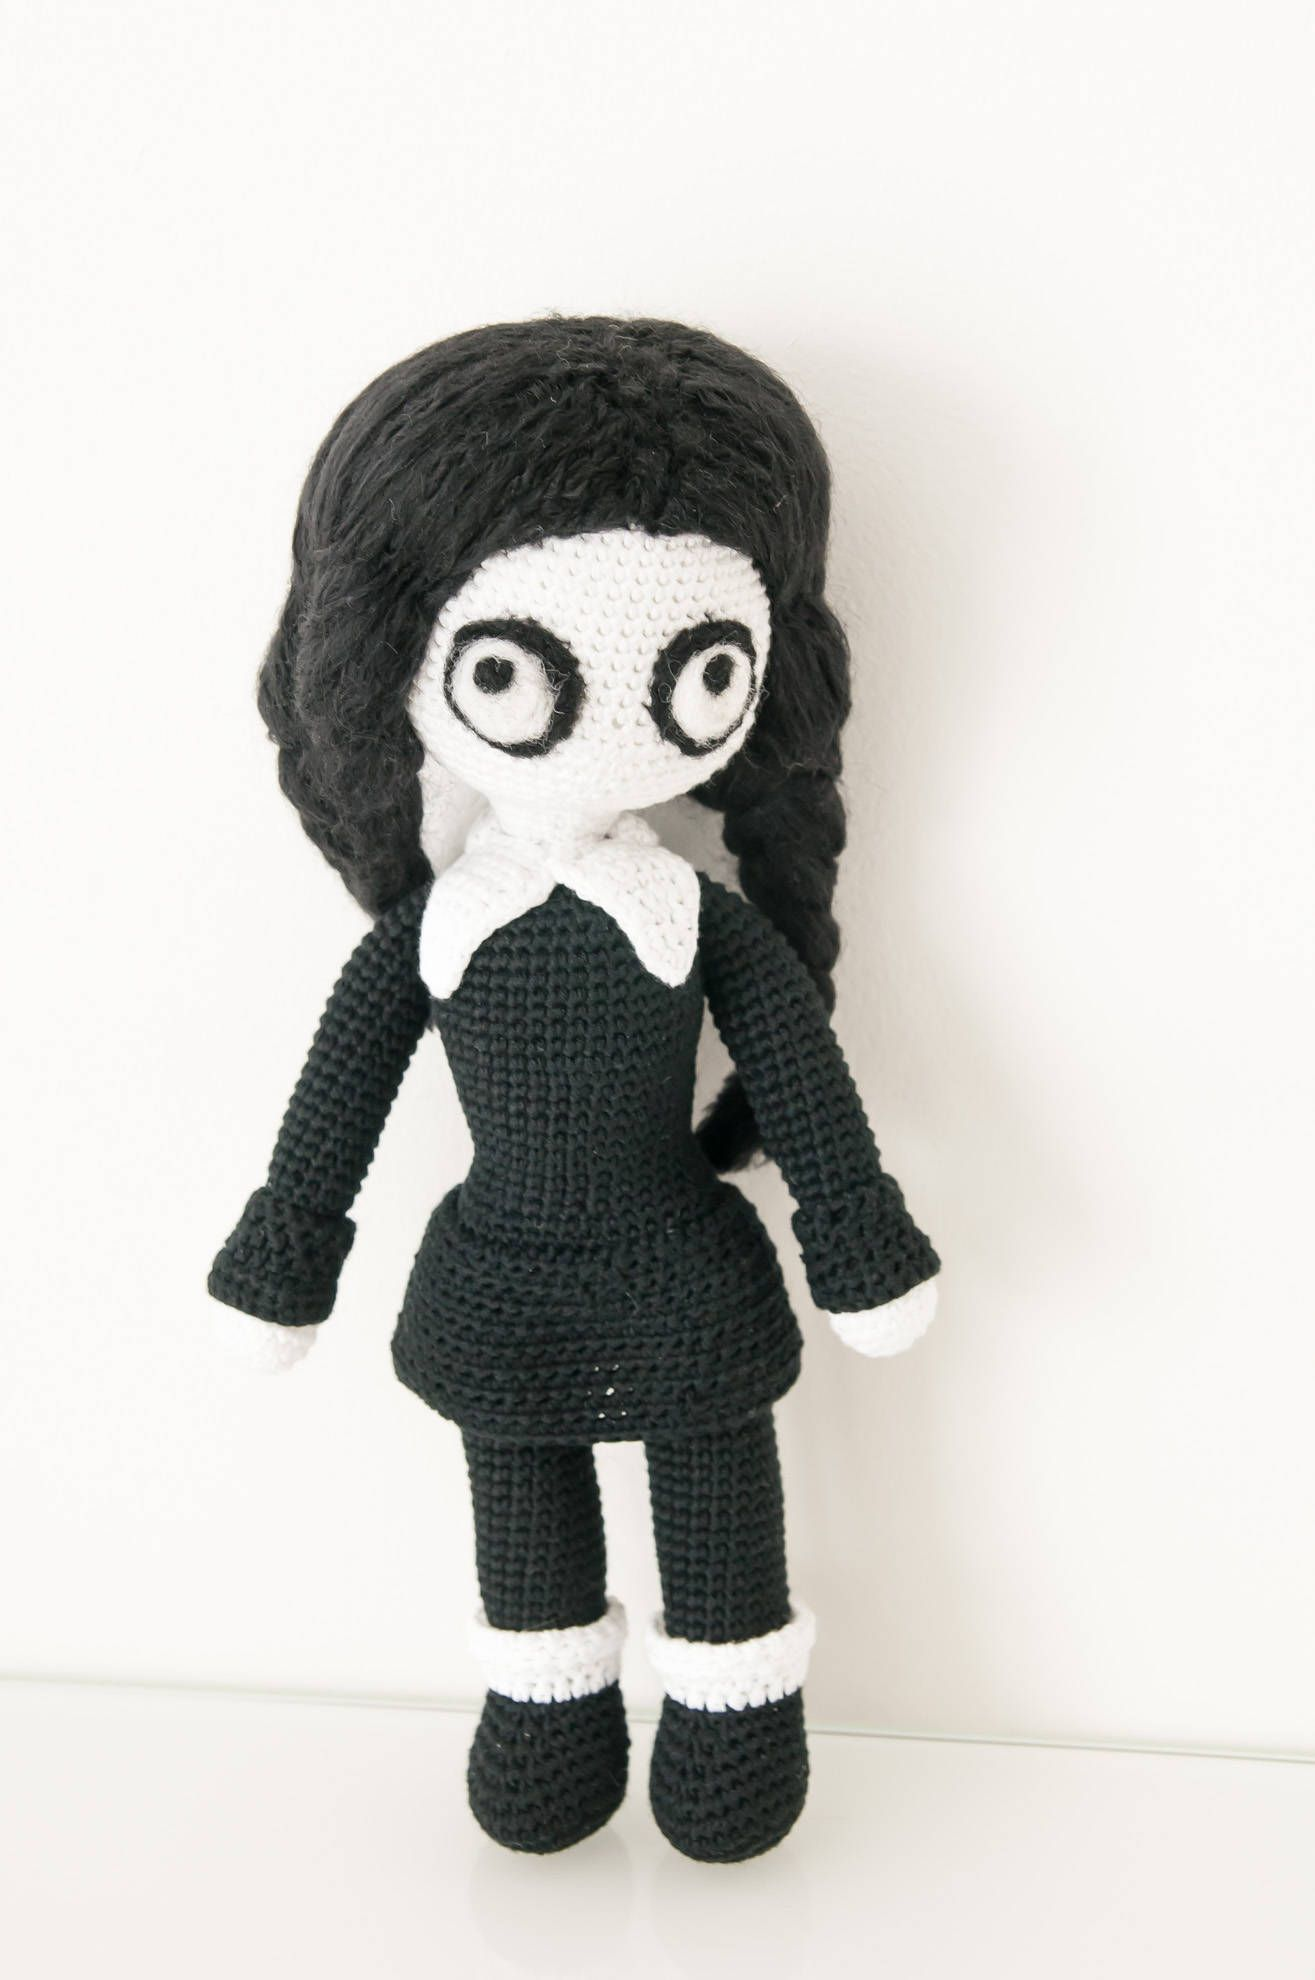 Crochet pattern, amigurumi pattern, Halloween crochet pattern ...